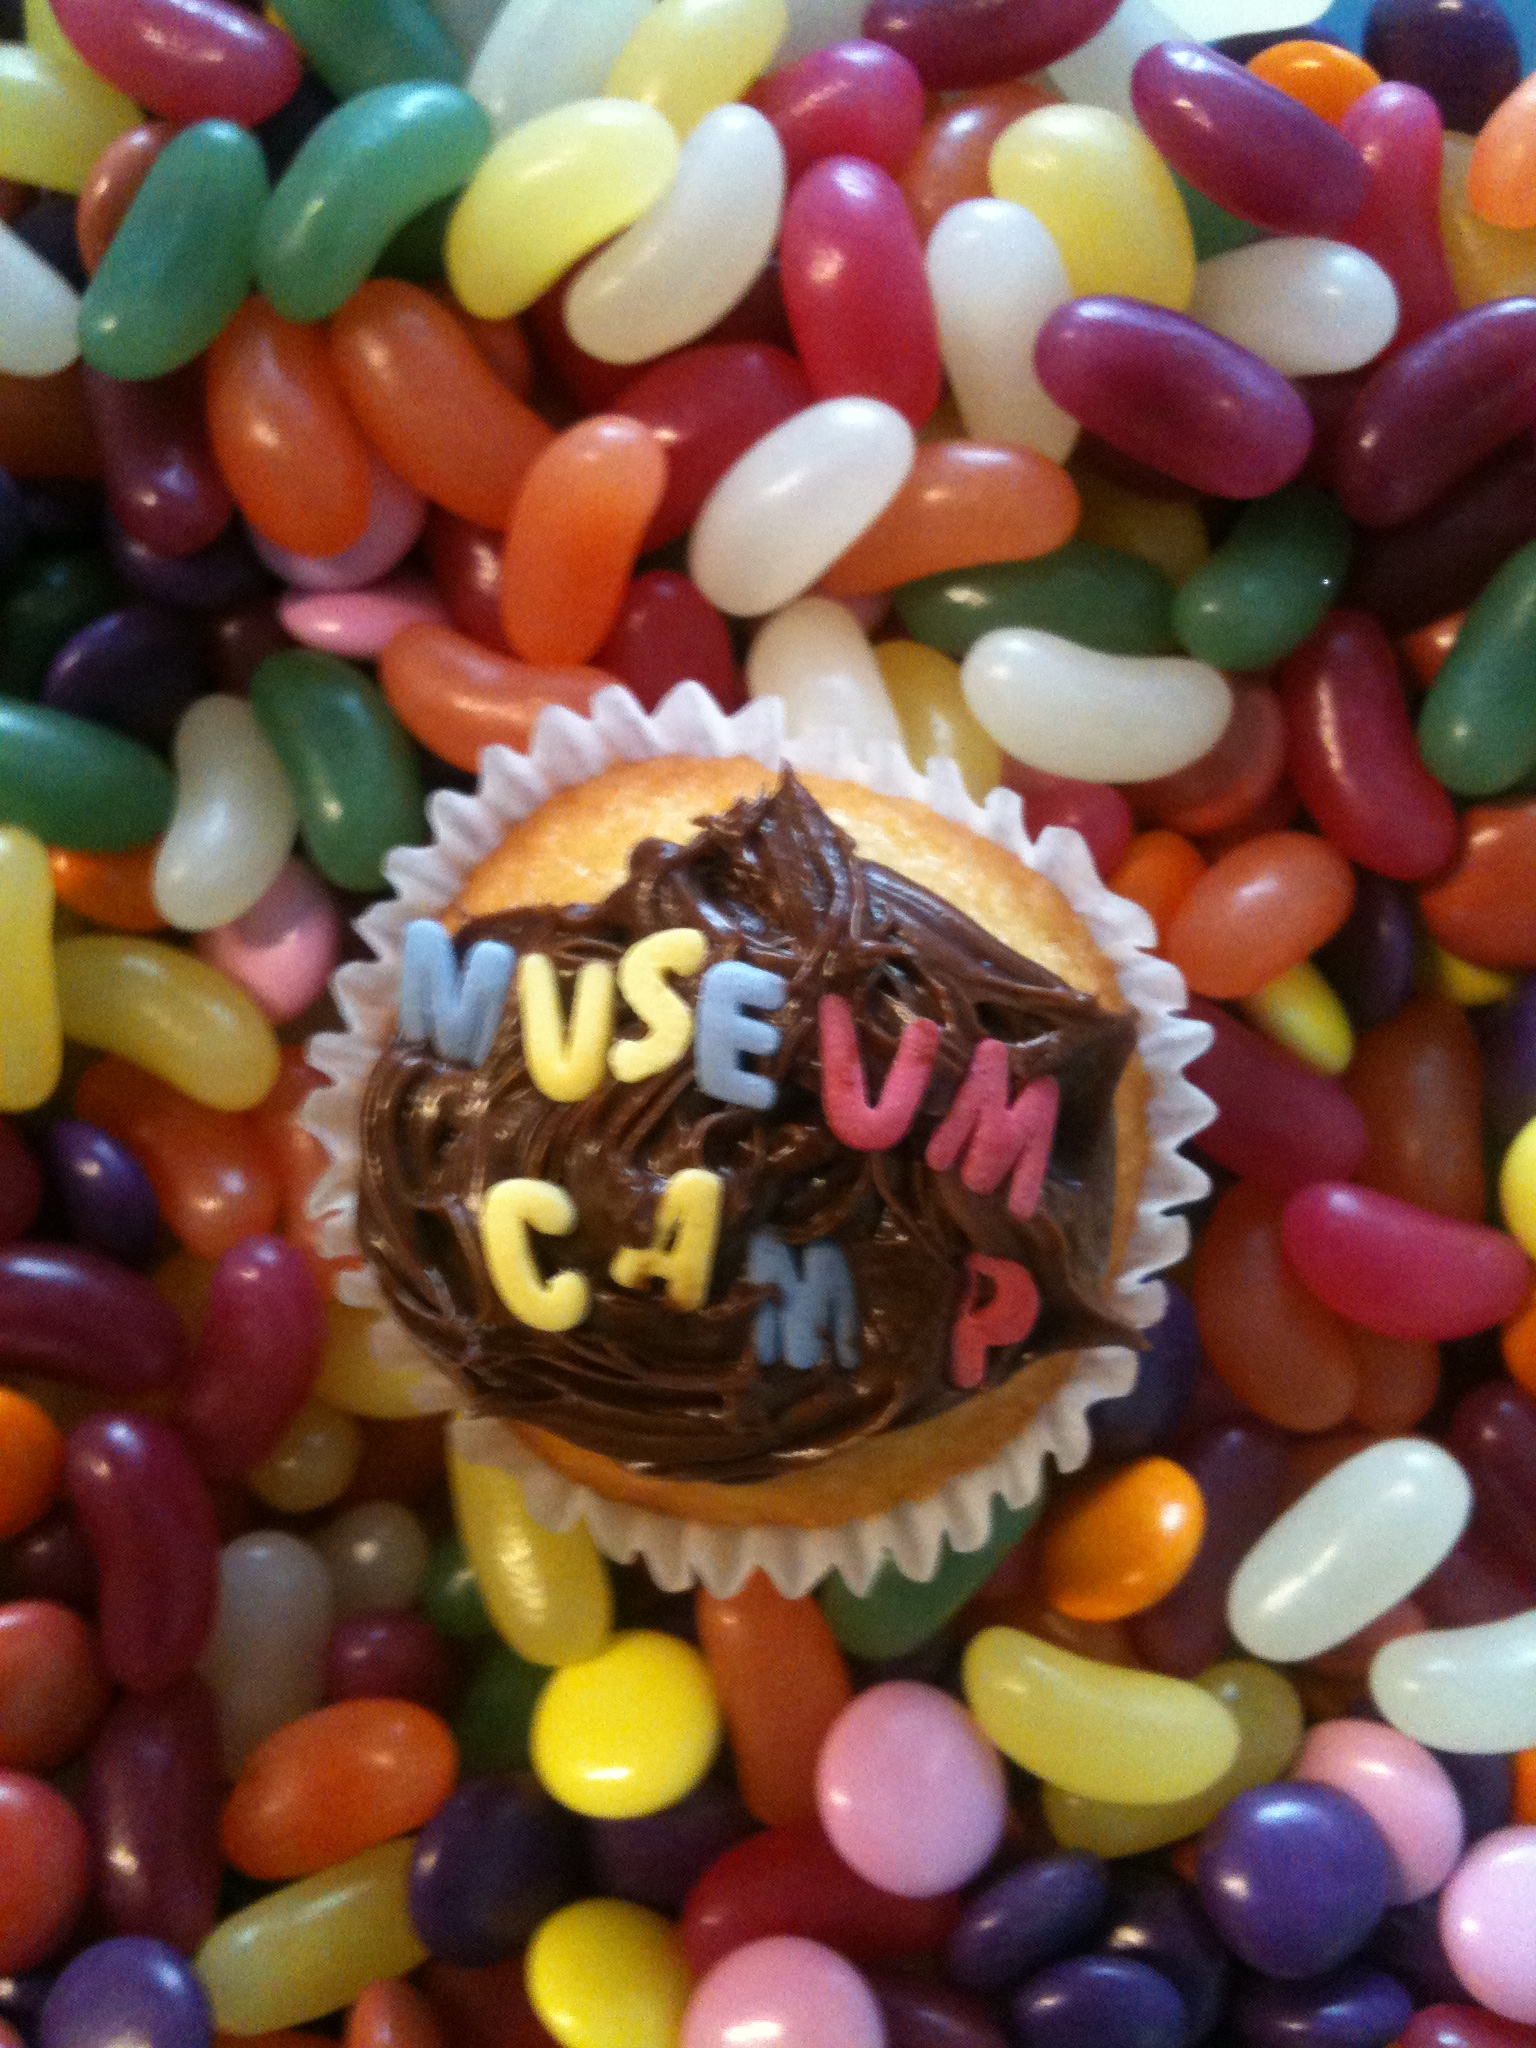 #MuseumCamp ala #Cakefest – an unconference for museum people & cake v1.0